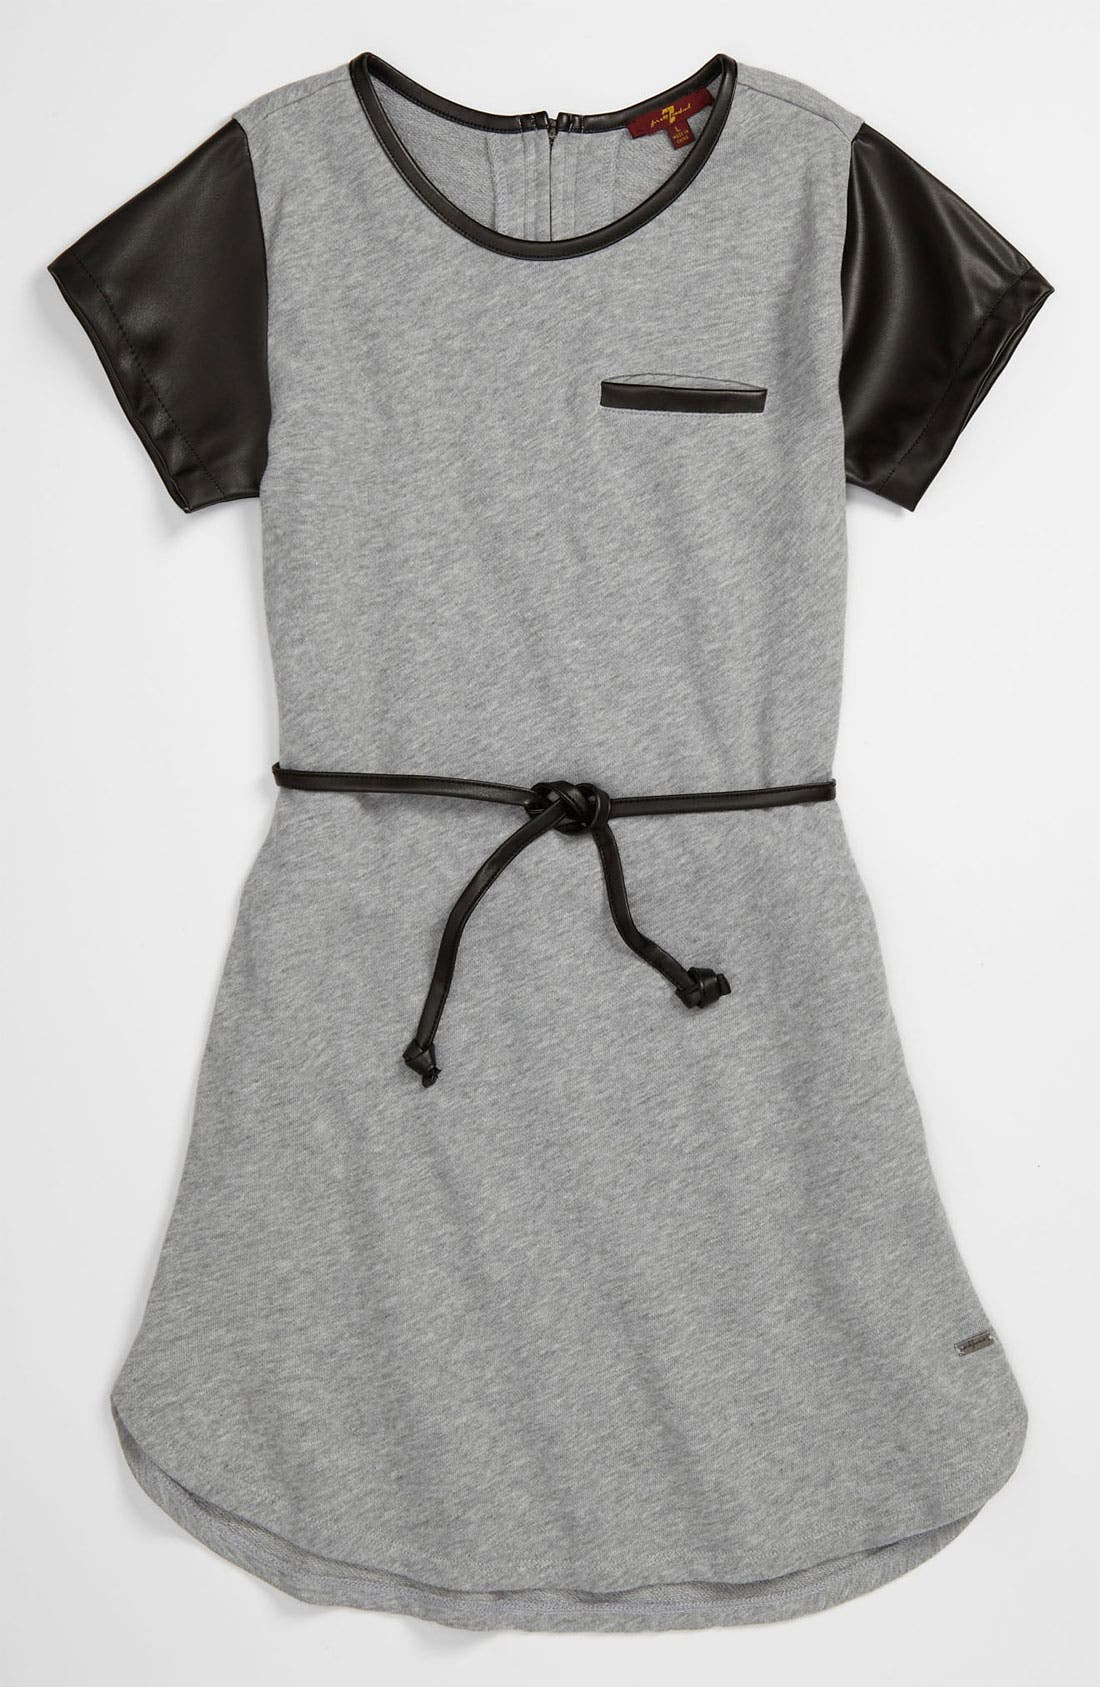 Alternate Image 1 Selected - 7 For All Mankind® Faux Leather Trim Dress (Big Girls)